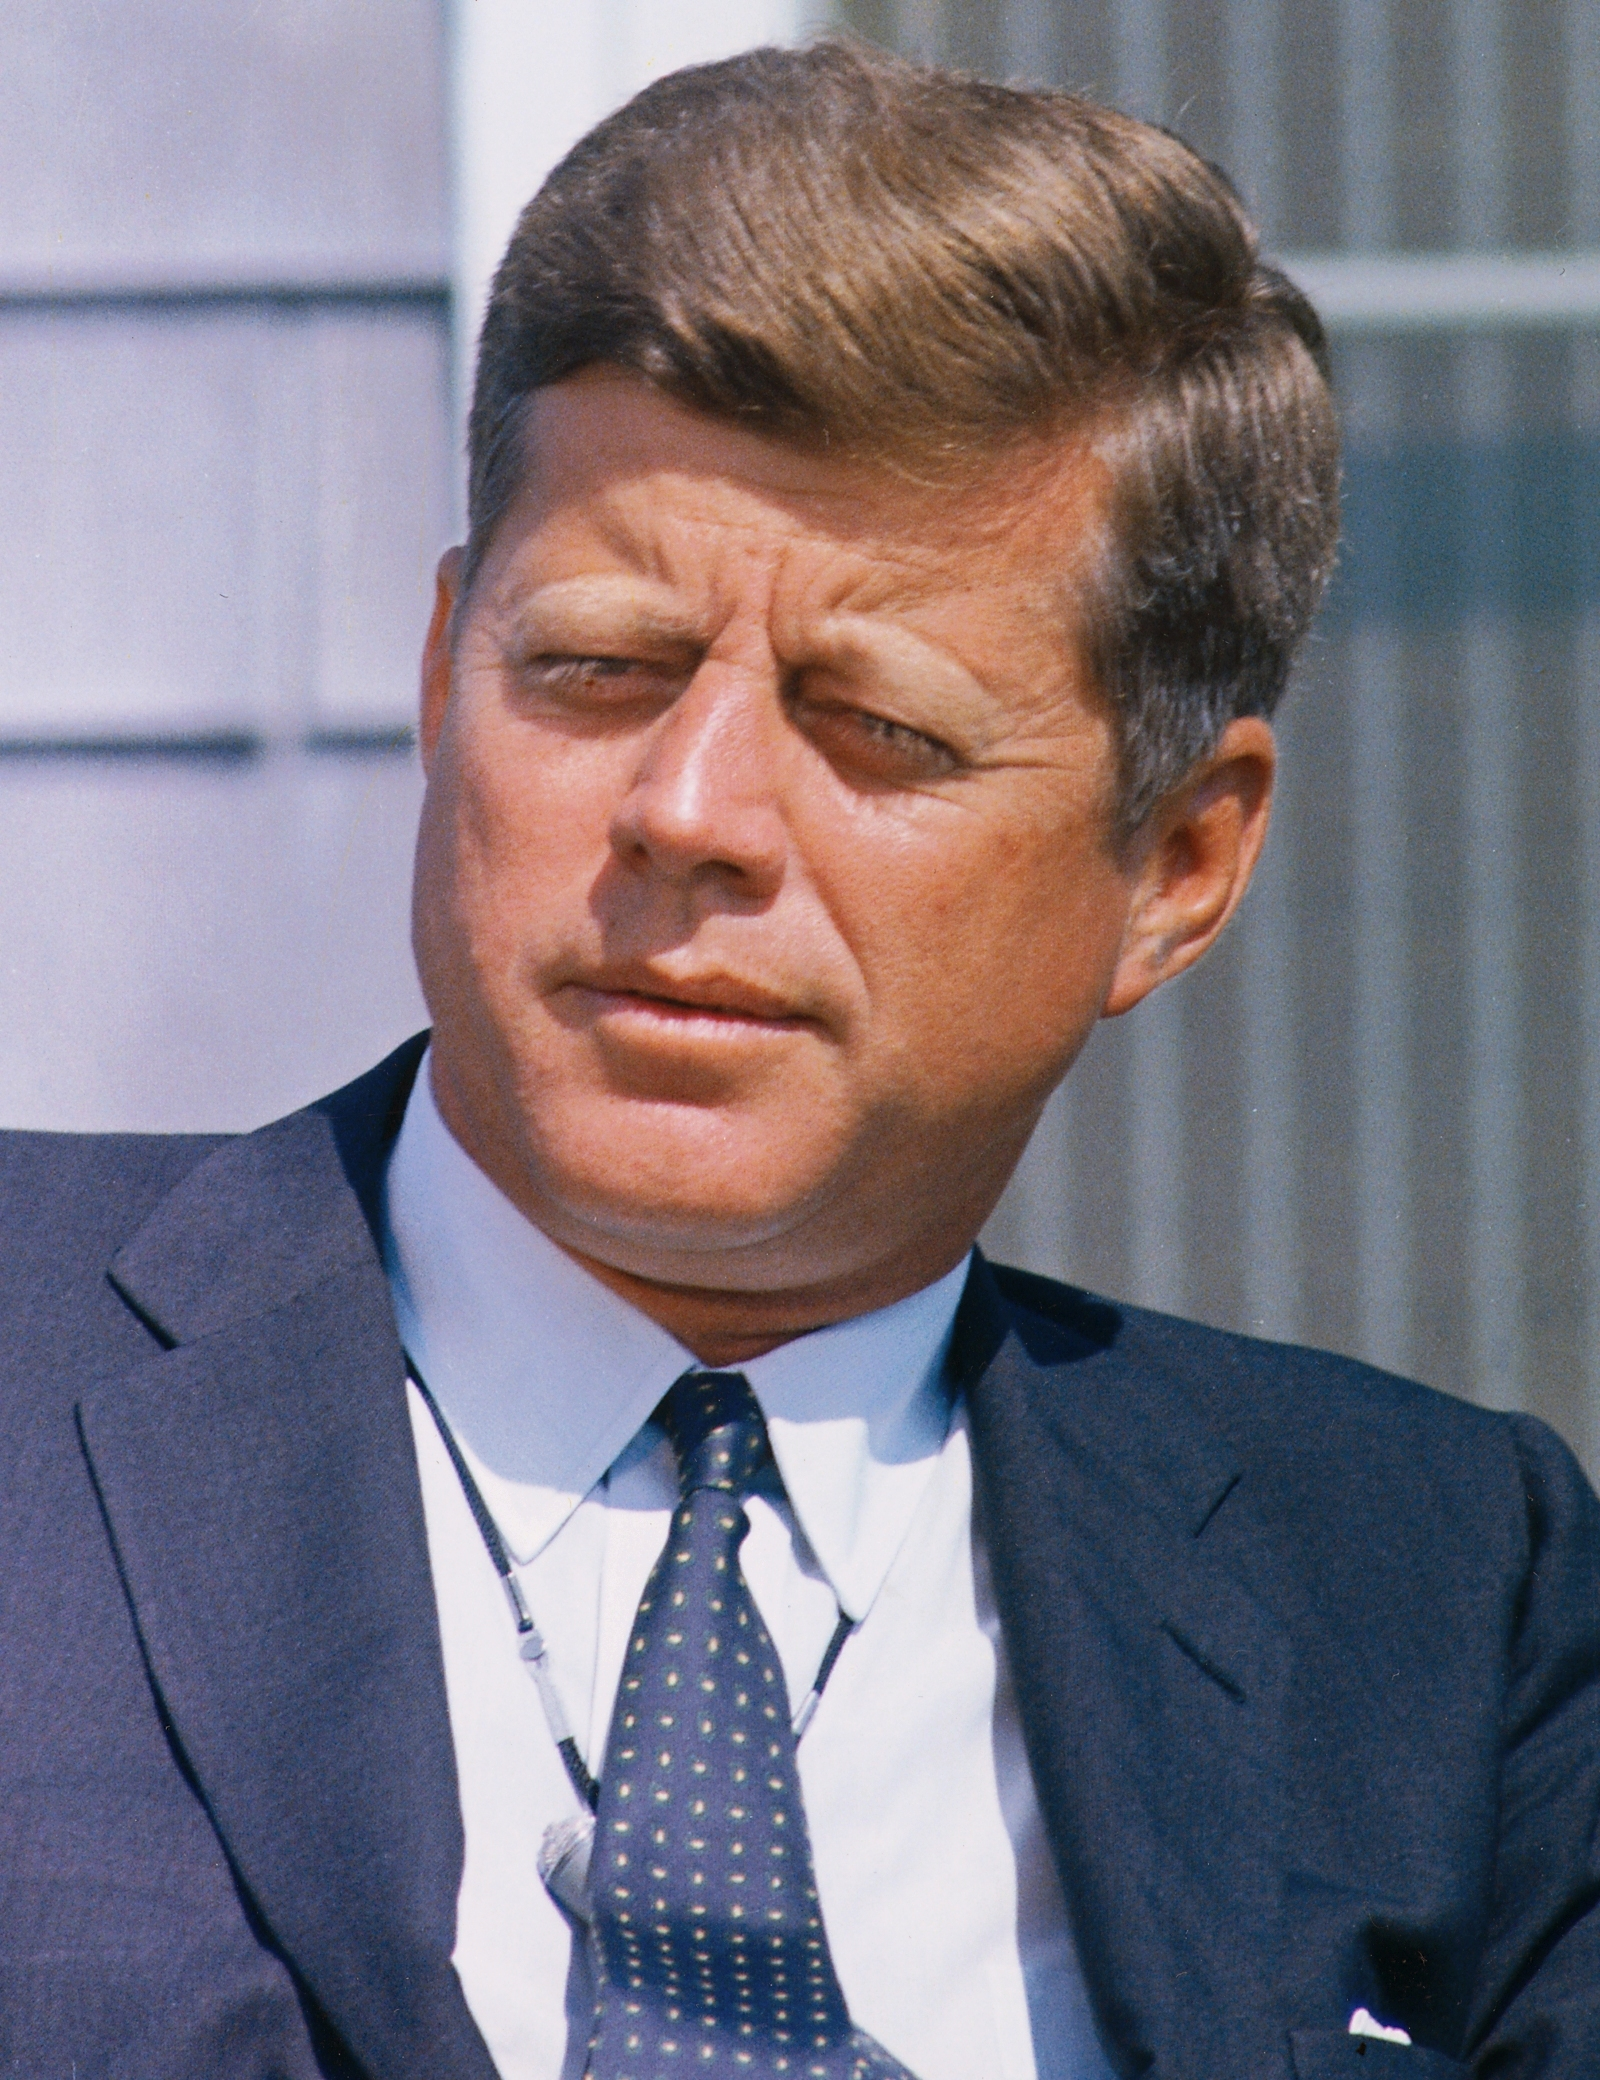 Accept. The President john f kennedy